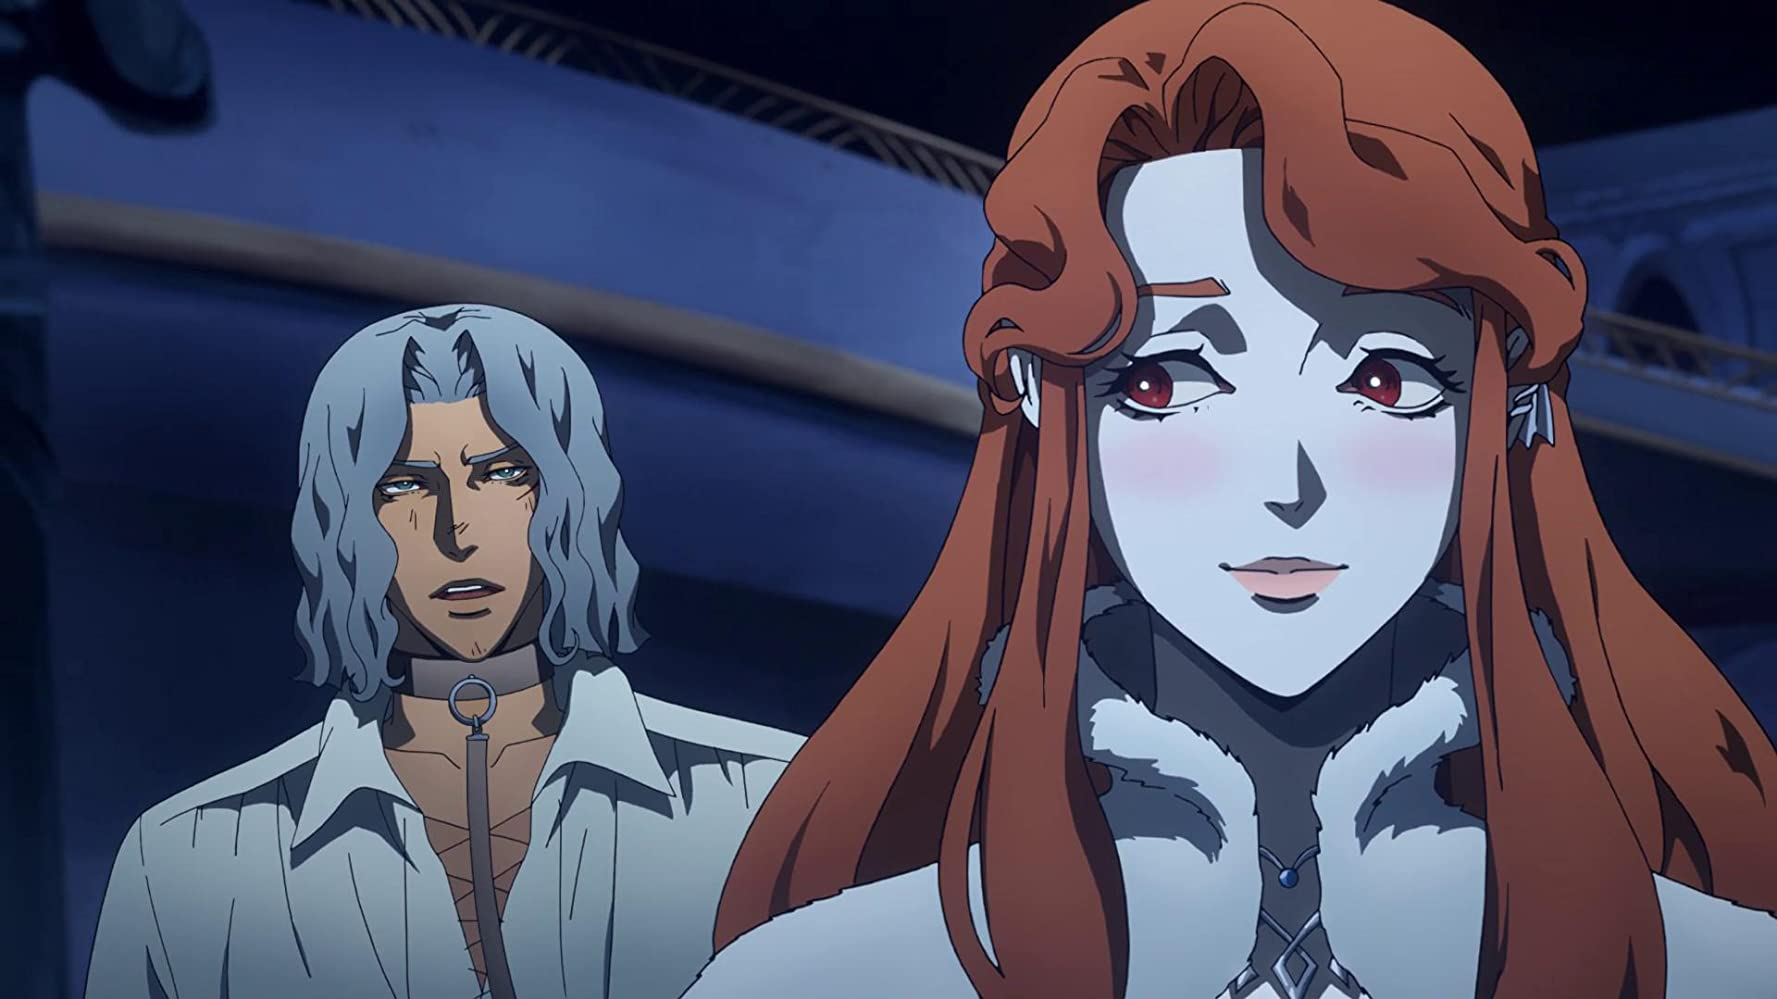 Castlevania season 3 episode 6 review The Good Dream Hector Leonore